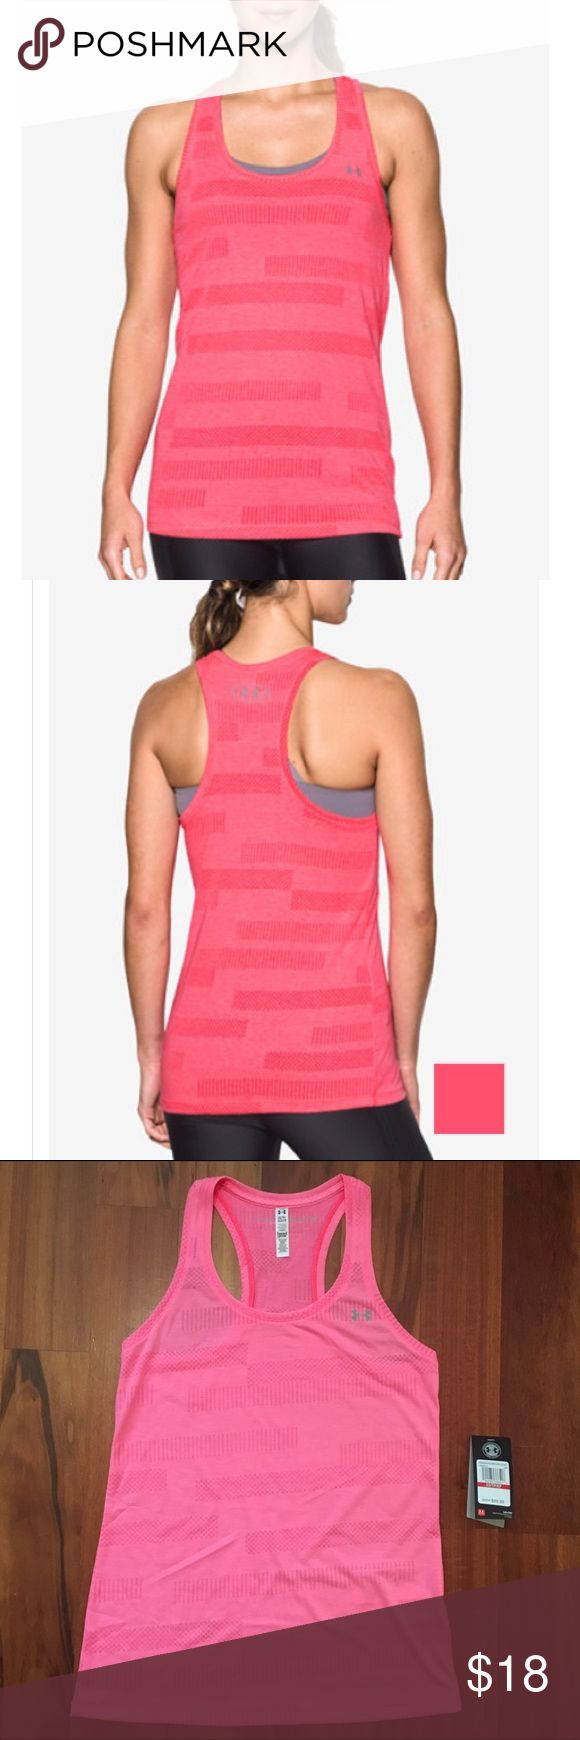 NWOT Under Armour Threadborne Tank in Pink XS NWOT! I brought this Tank home and popped off the tags before deciding that I just have too many tops in this color. This is a super lightweight jacquard racerback tank from Under Armour.  Loose, airy fabric and style. I am usually a small and this is still nice and loose on me. Color is Pink Shock. Polyester. Under Armour Tops Tank Tops